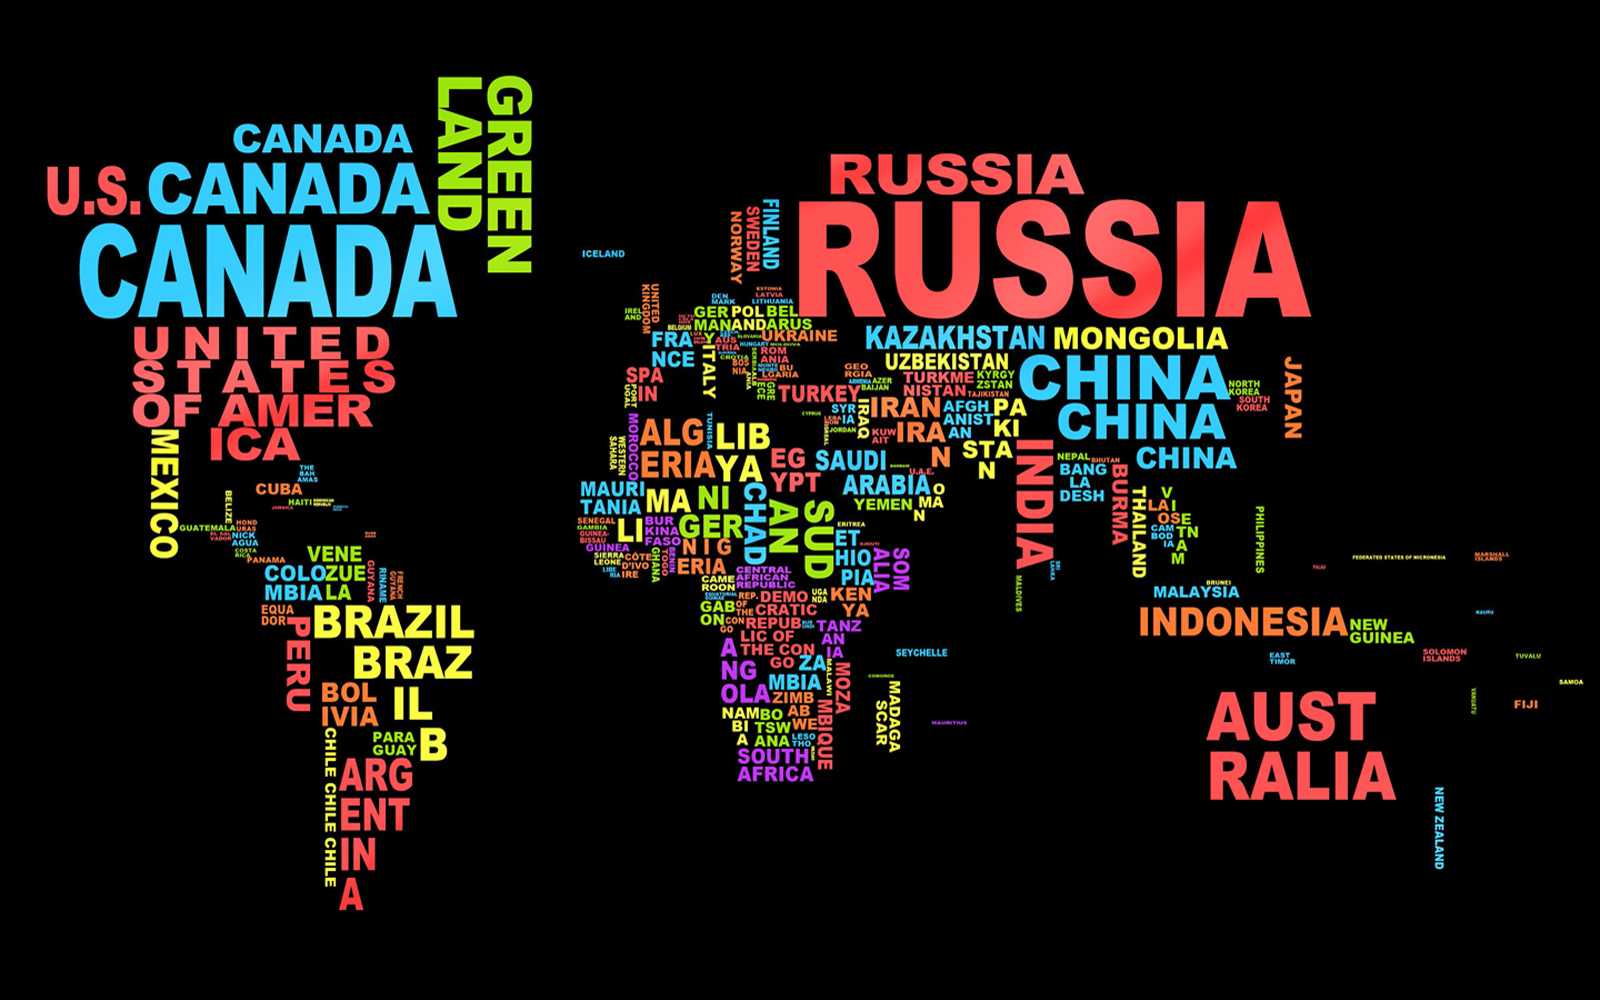 http://2.bp.blogspot.com/-VeGuQn9_47I/T34I0zNCt1I/AAAAAAAABHk/C-GZ4DFz_84/s1600/World_Map_Country_Names_Typography_HD_W-Vvallpaper.Nerallpaper.jpg